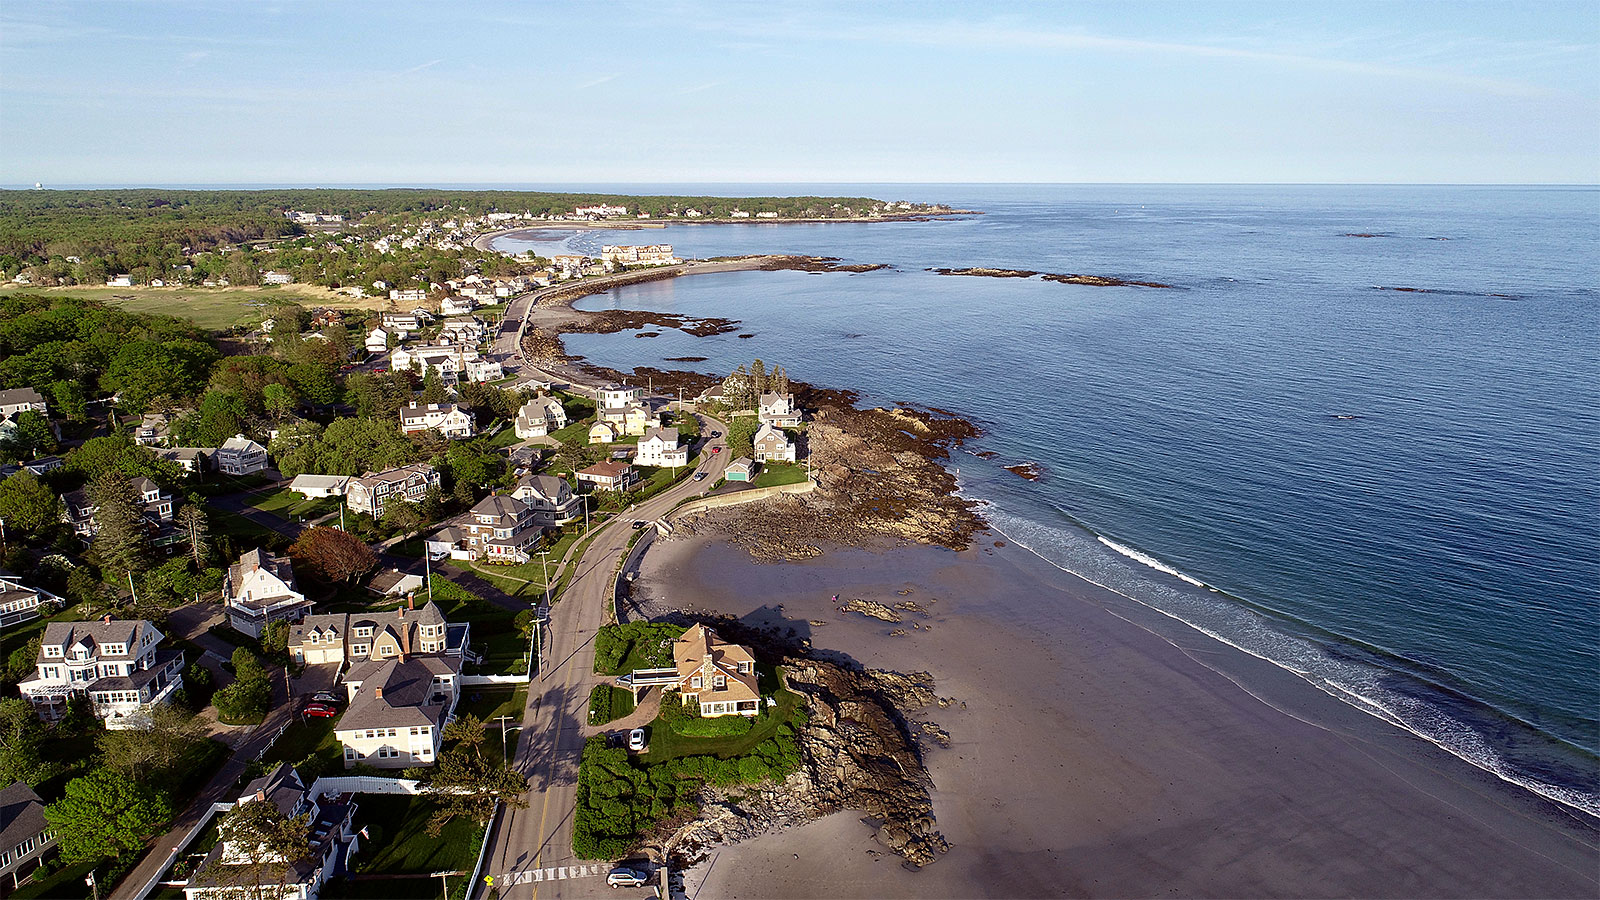 What to do and where to stay for a long weekend in Kennebunkport, Maine